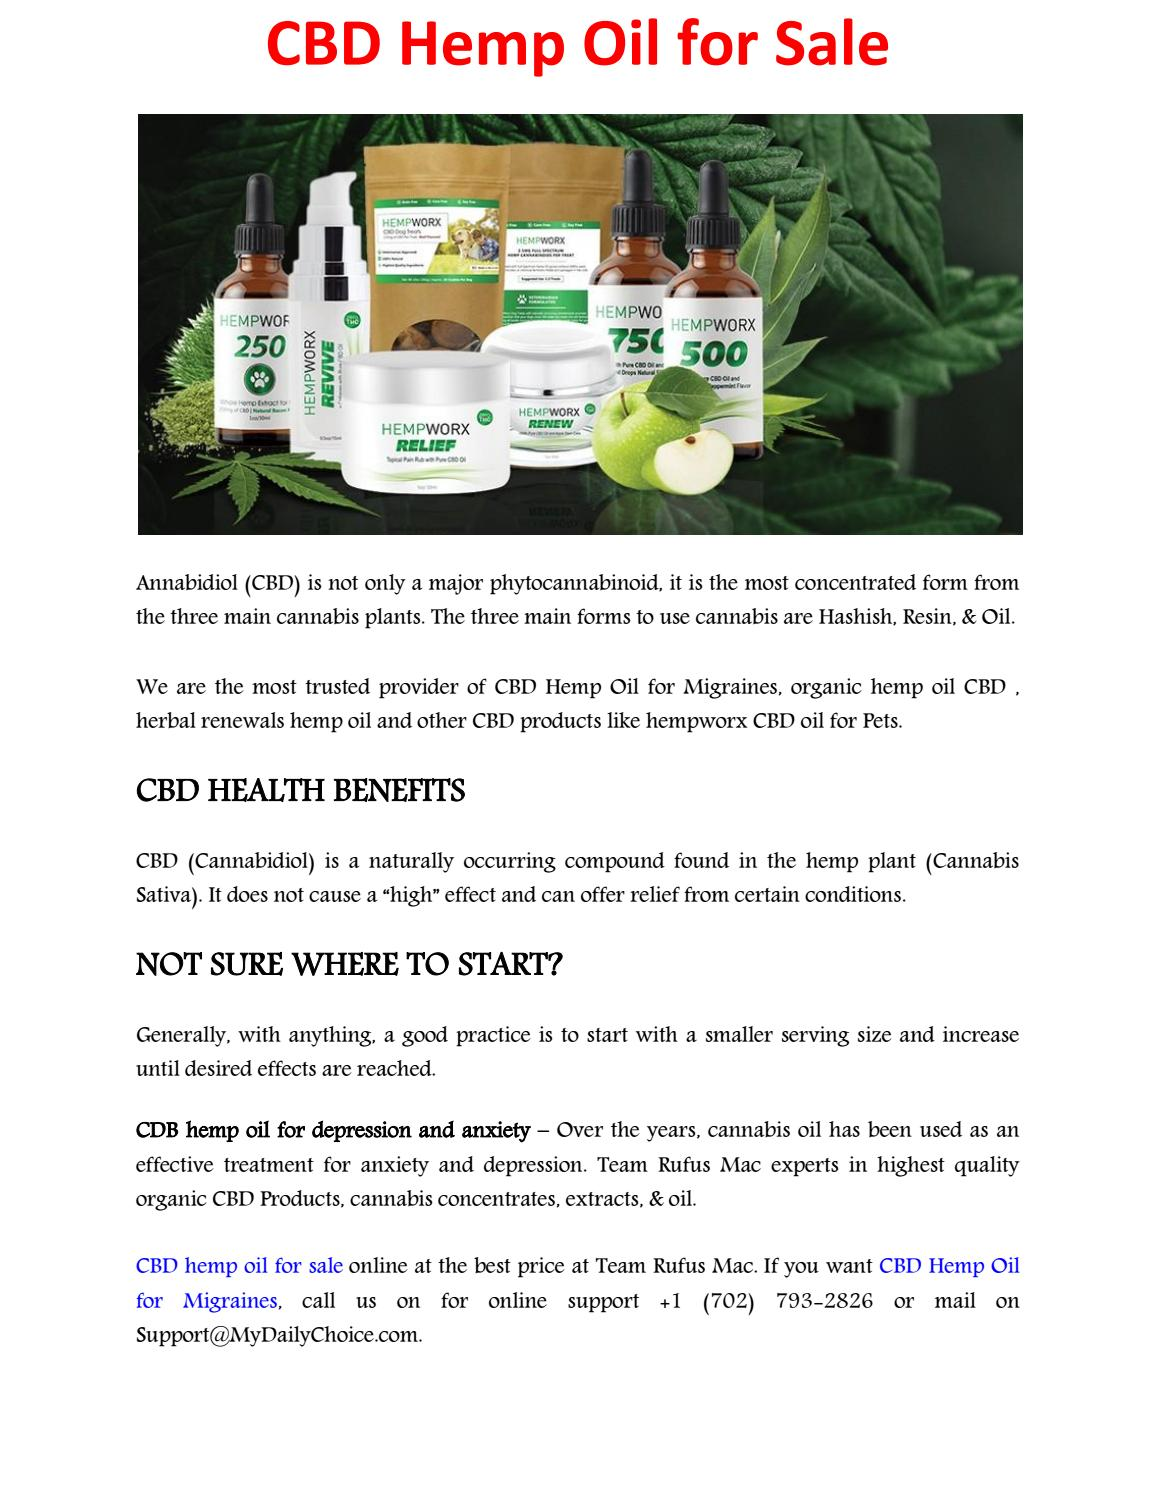 CBD hemp oil for sale by Robin Cabral - issuu